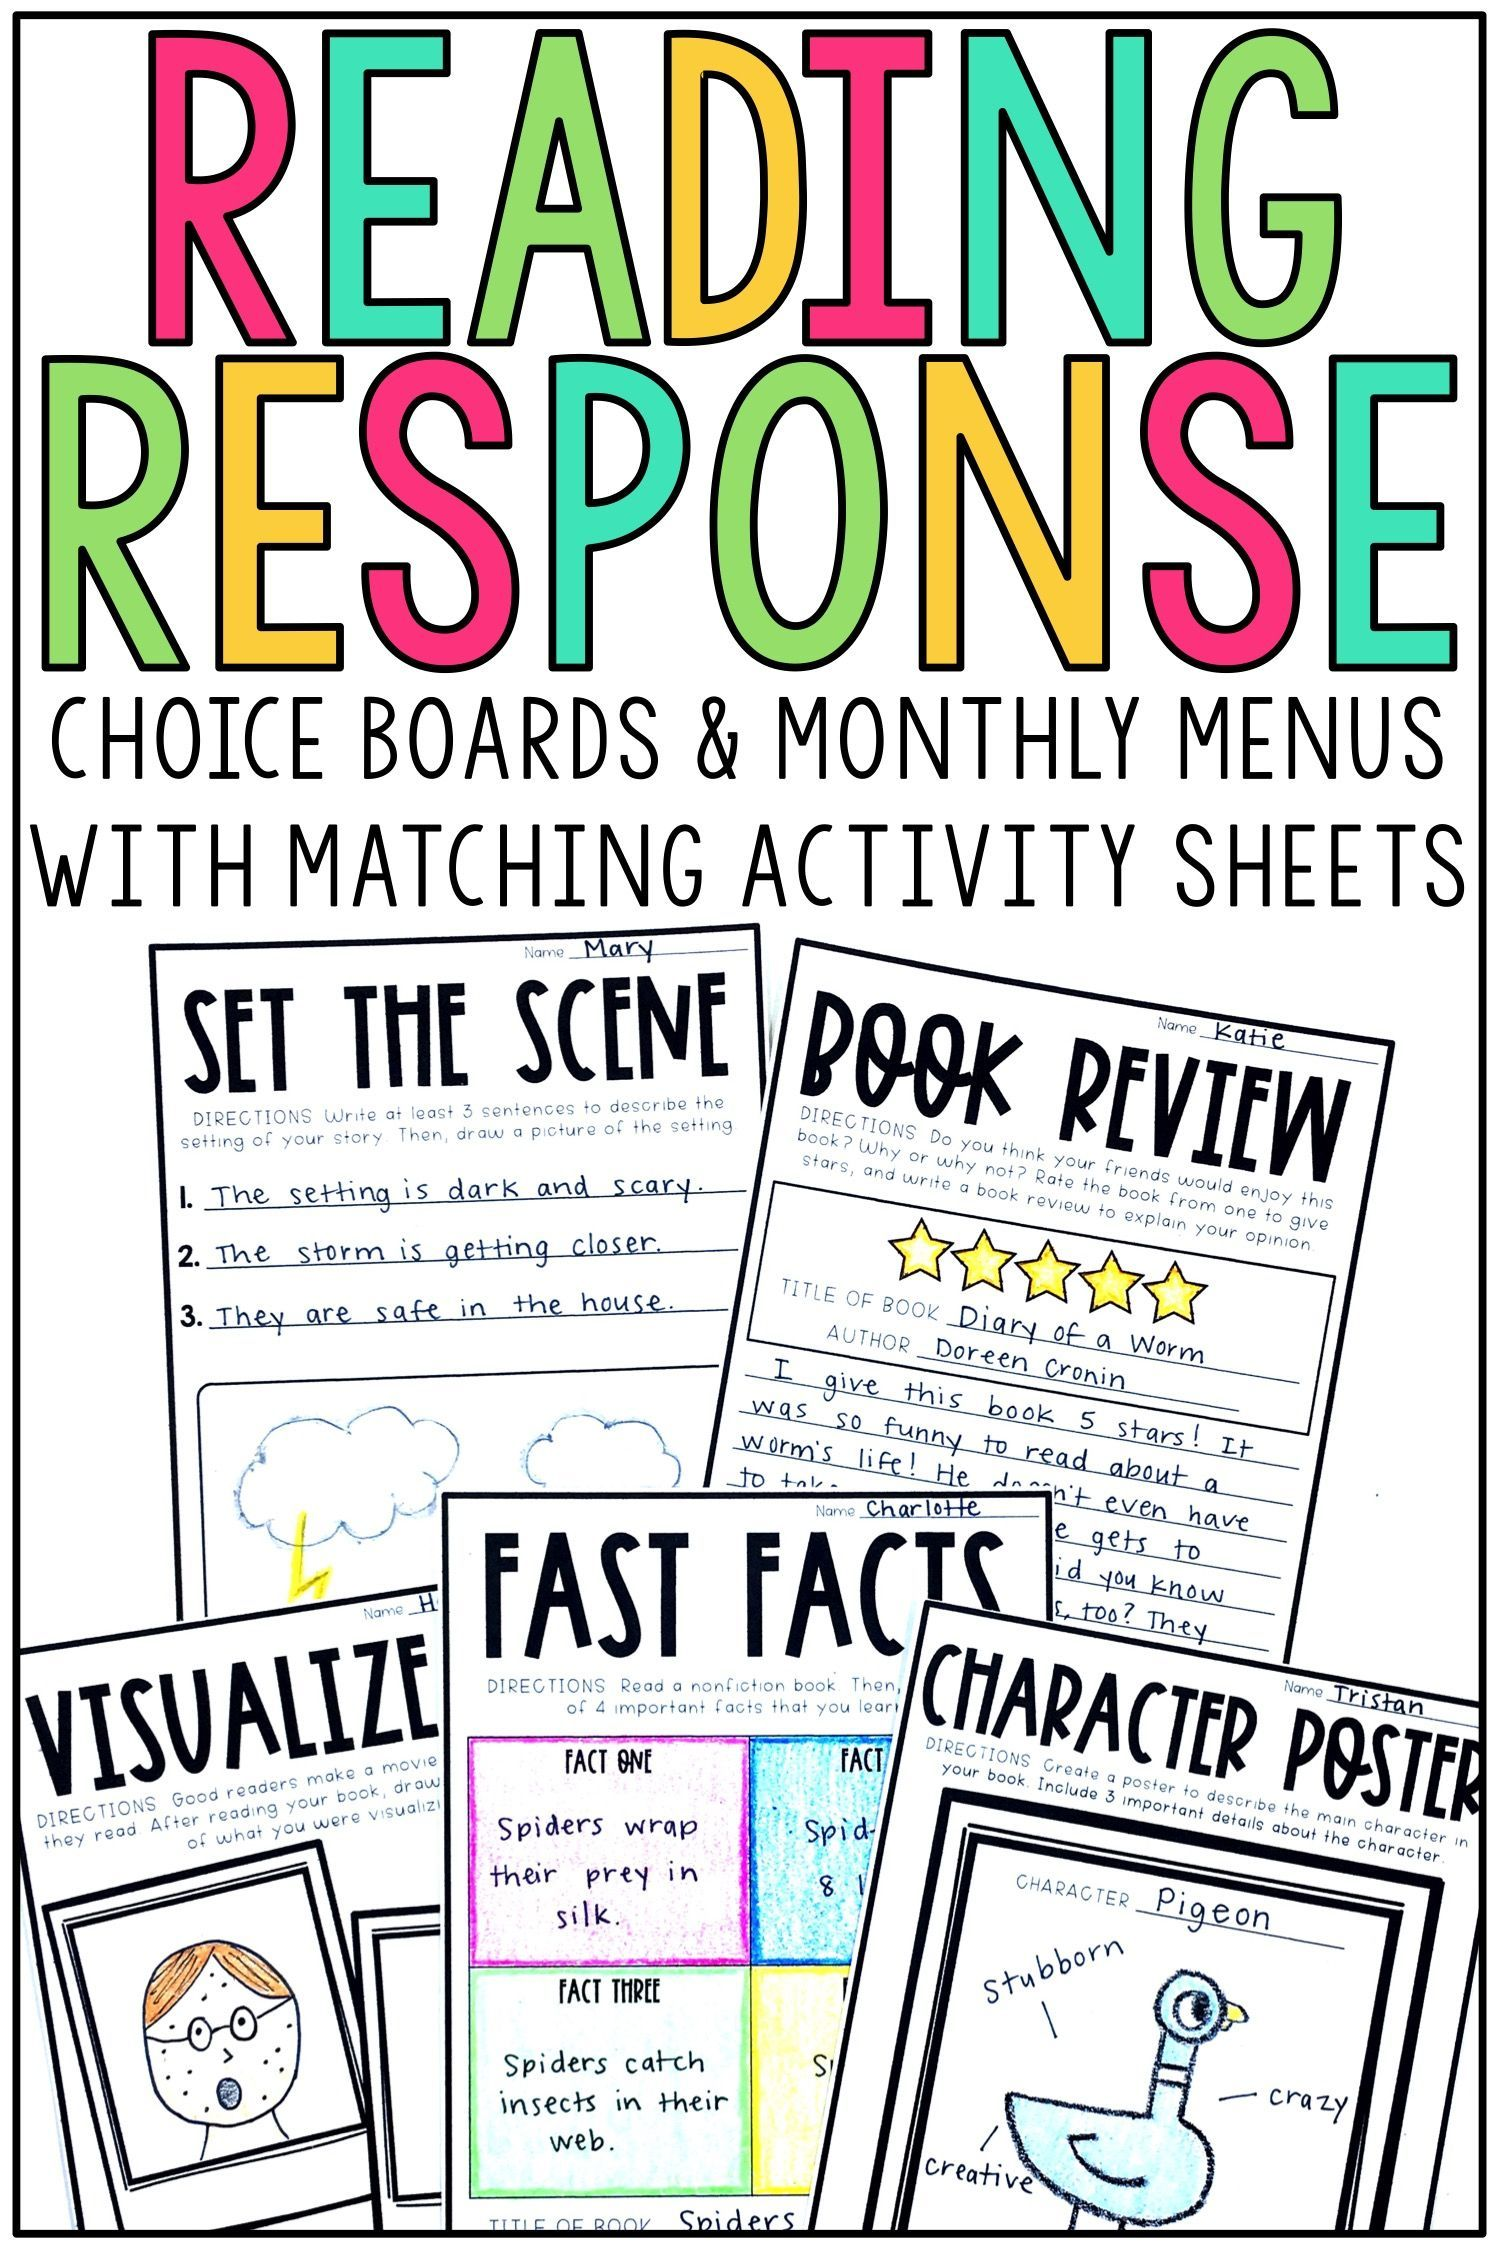 Reading Response Menus And Activities For Fiction And Non